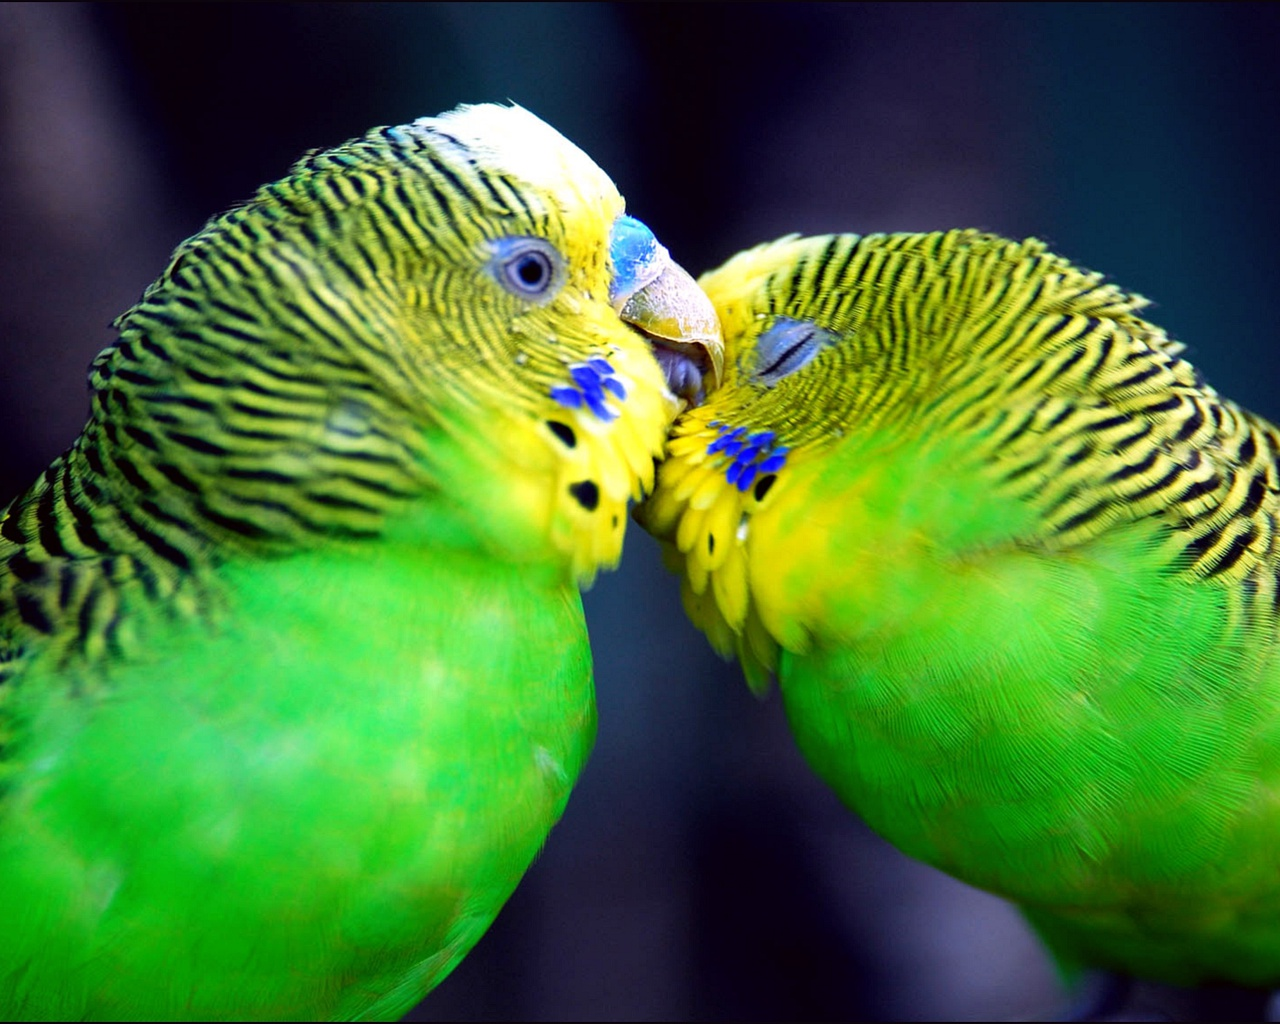 Love Birds Wallpaper In Hd : Wallpapers Fair: Love Wallpaper Design for Desktop Widescreen Free Download